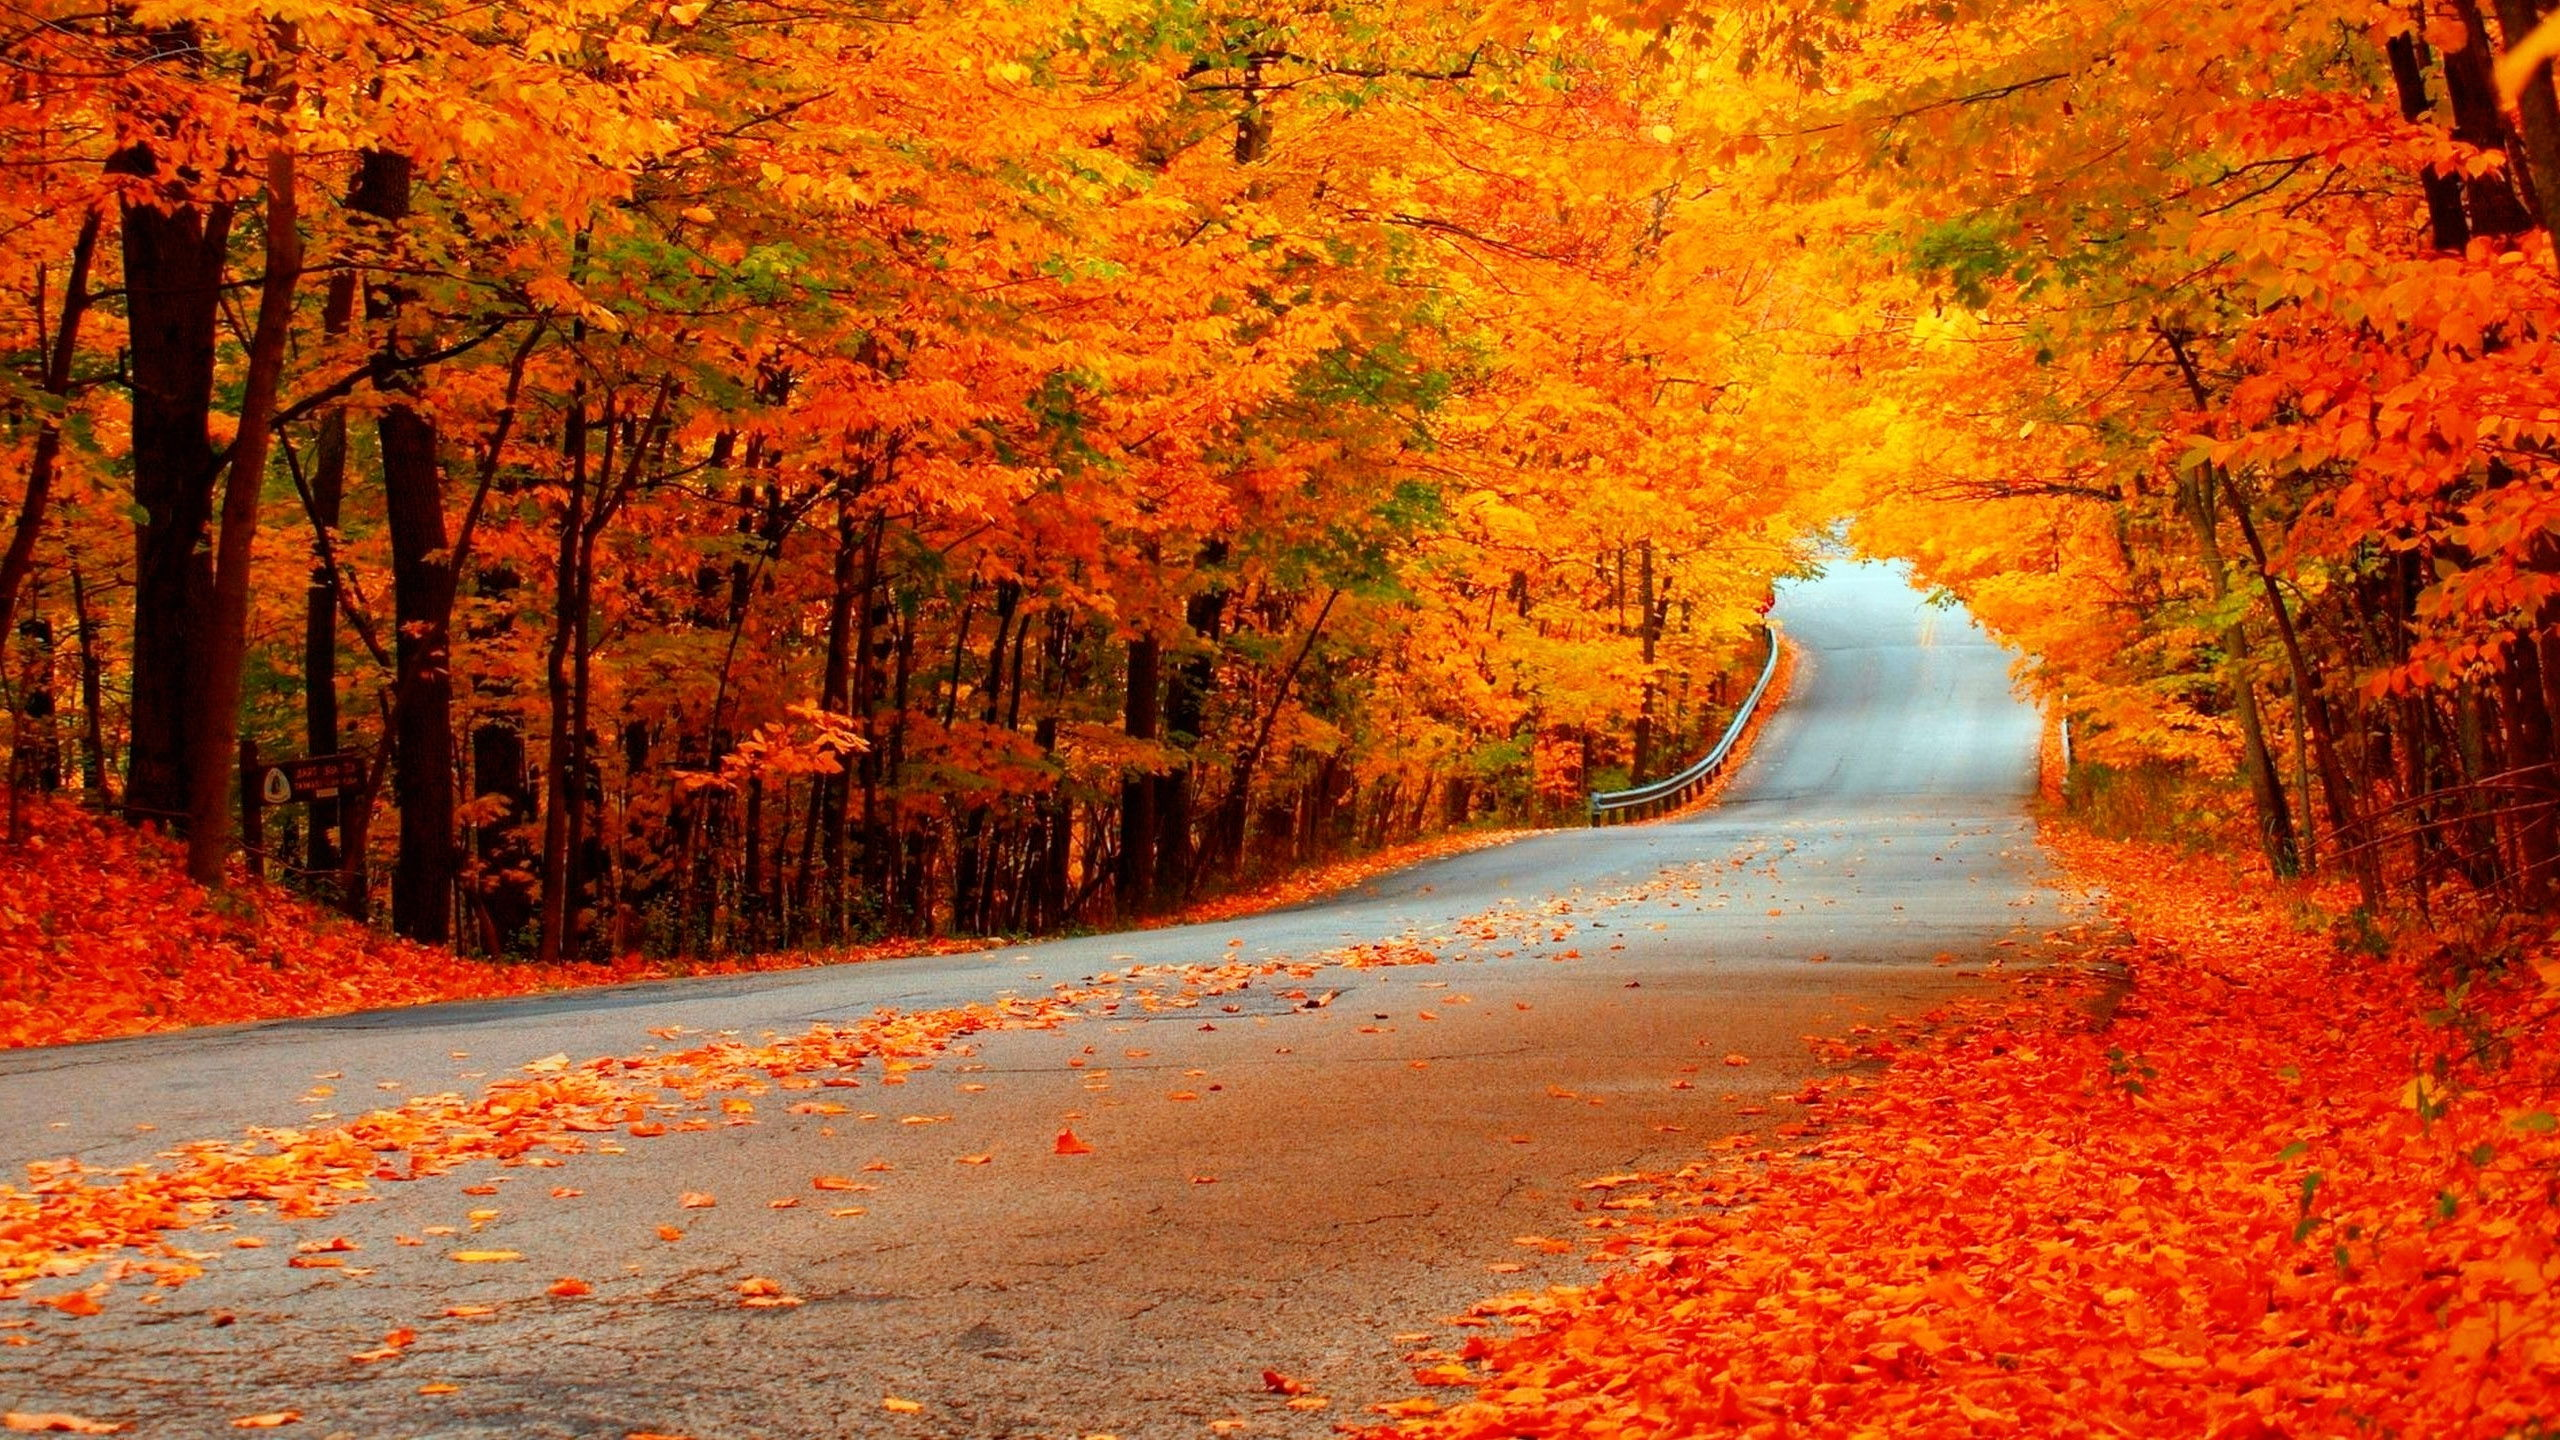 Forest computer wallpapers desktop backgrounds 1920x1200 id - Autumn Road With Orange Trees Full Hd Wallpaper And